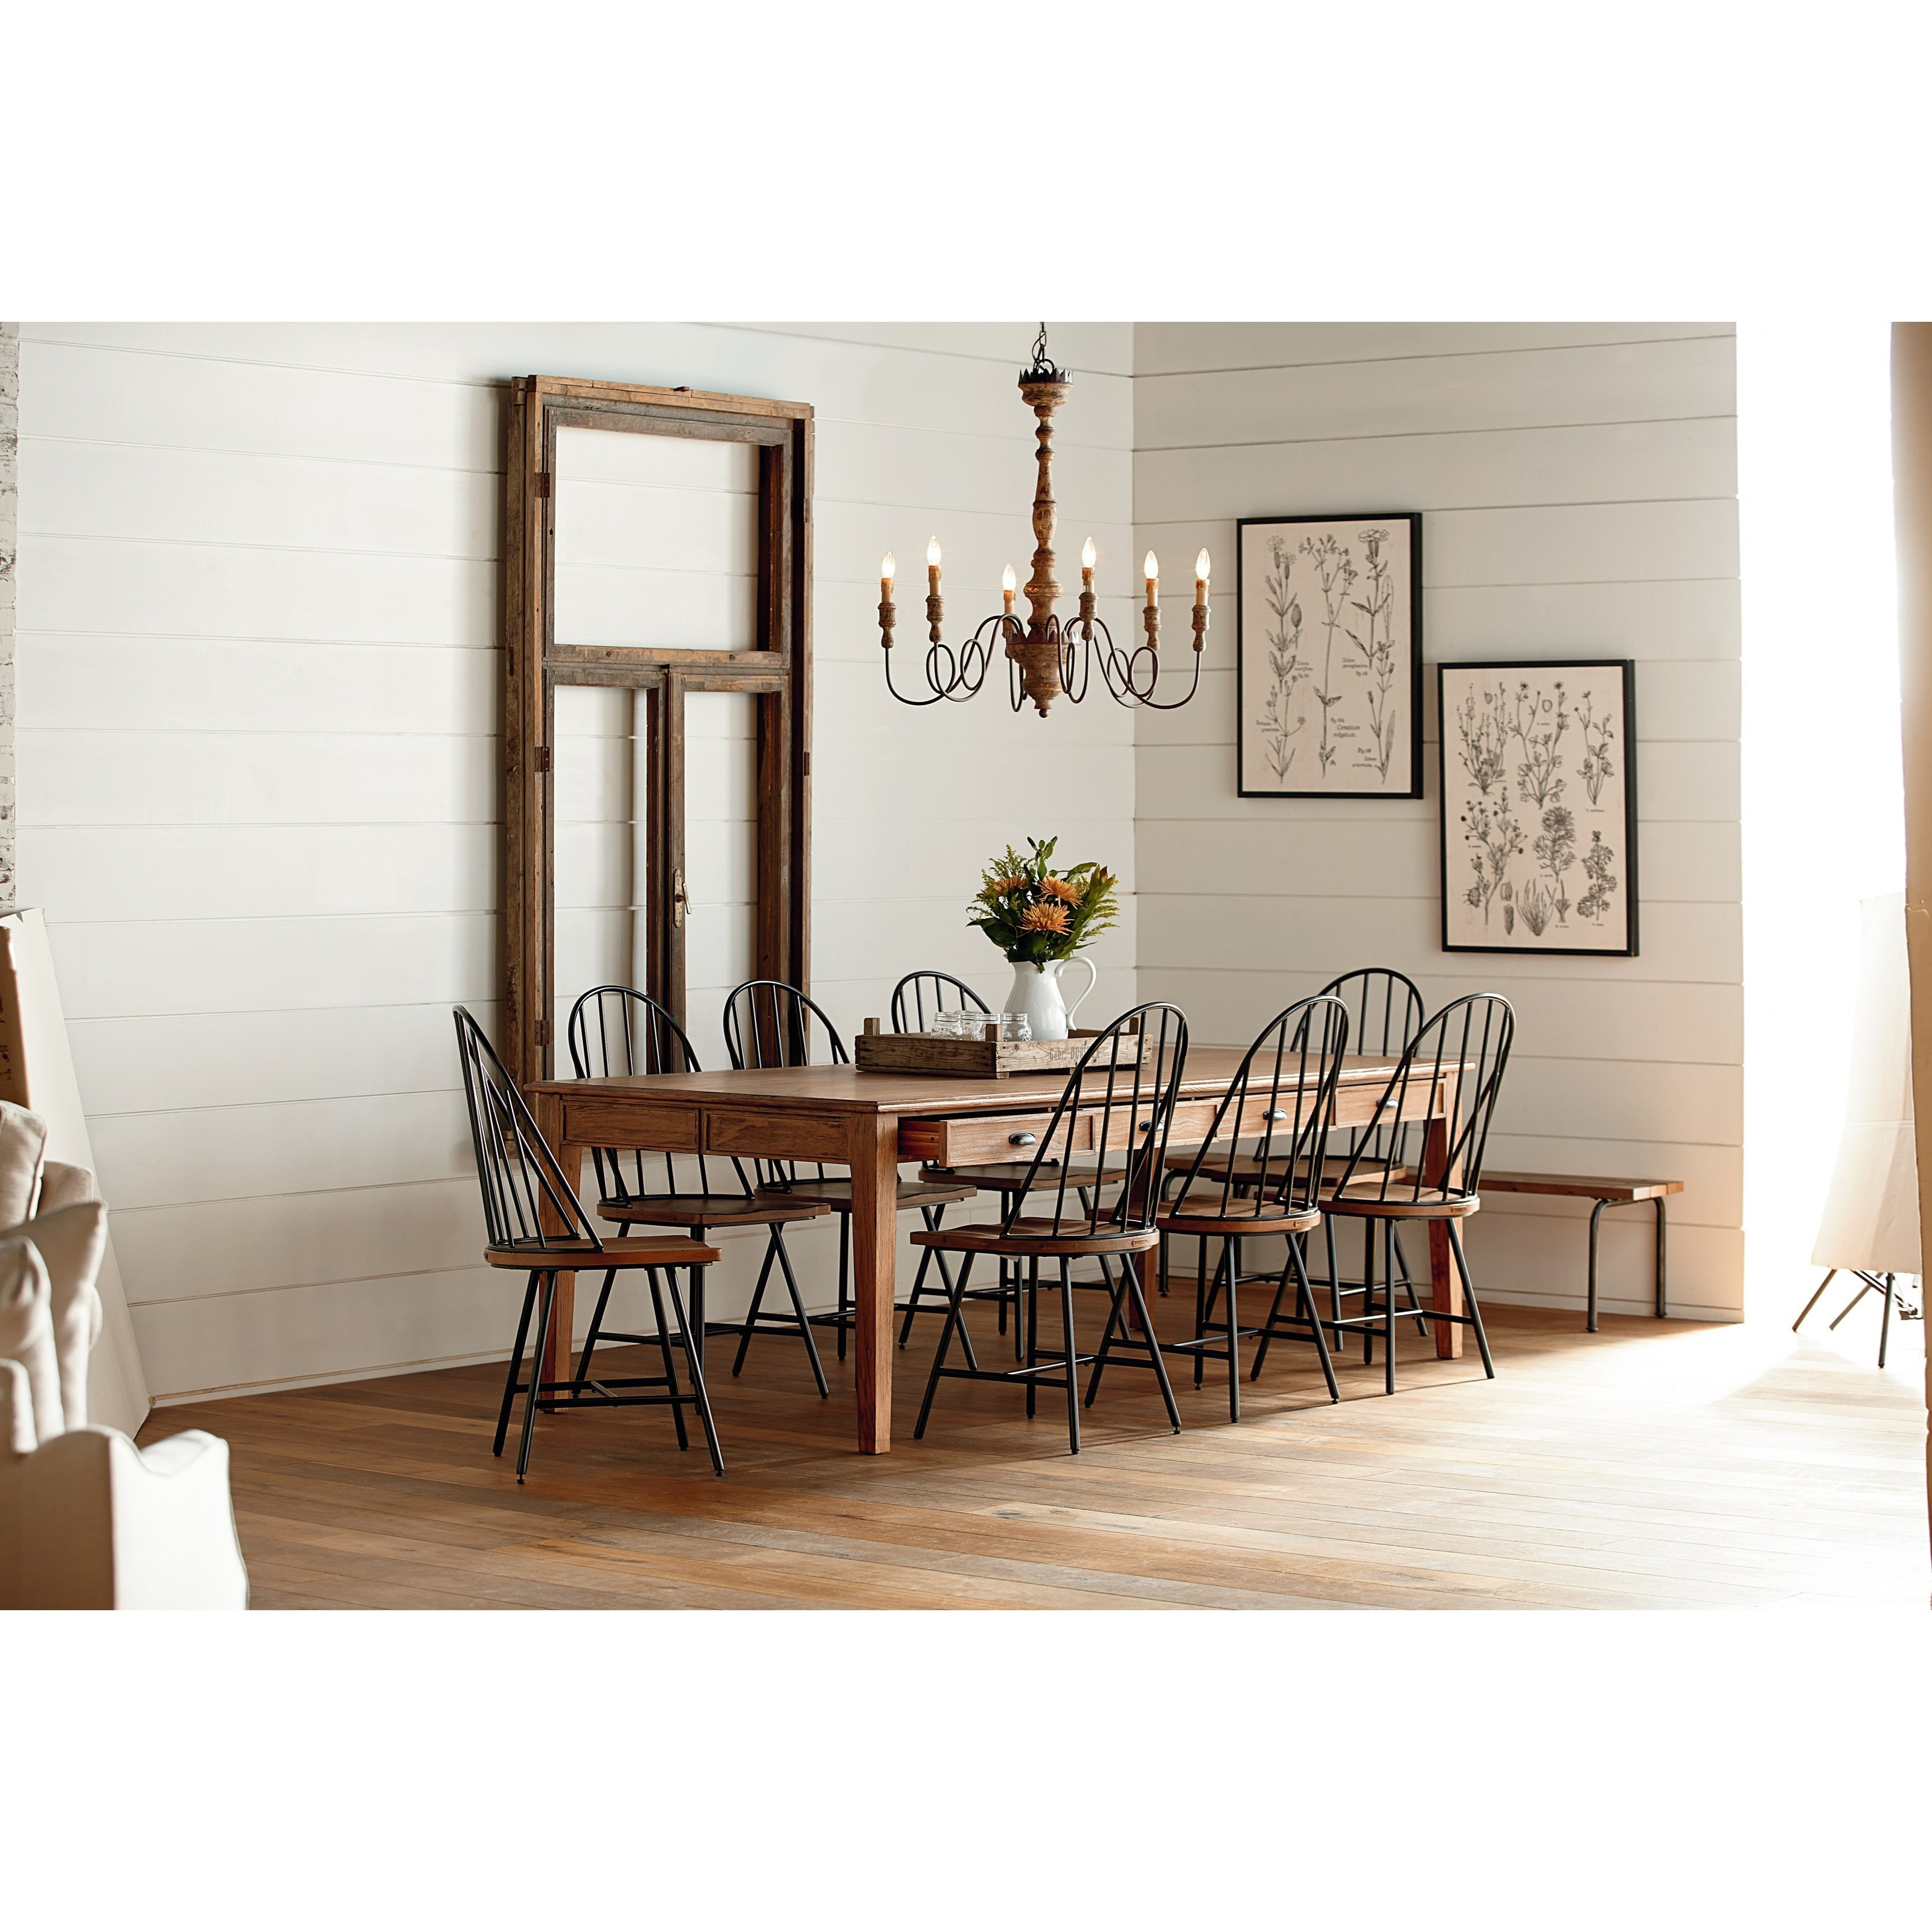 10 Piece Dining Set with Hoop Windsor Chairs Bench and